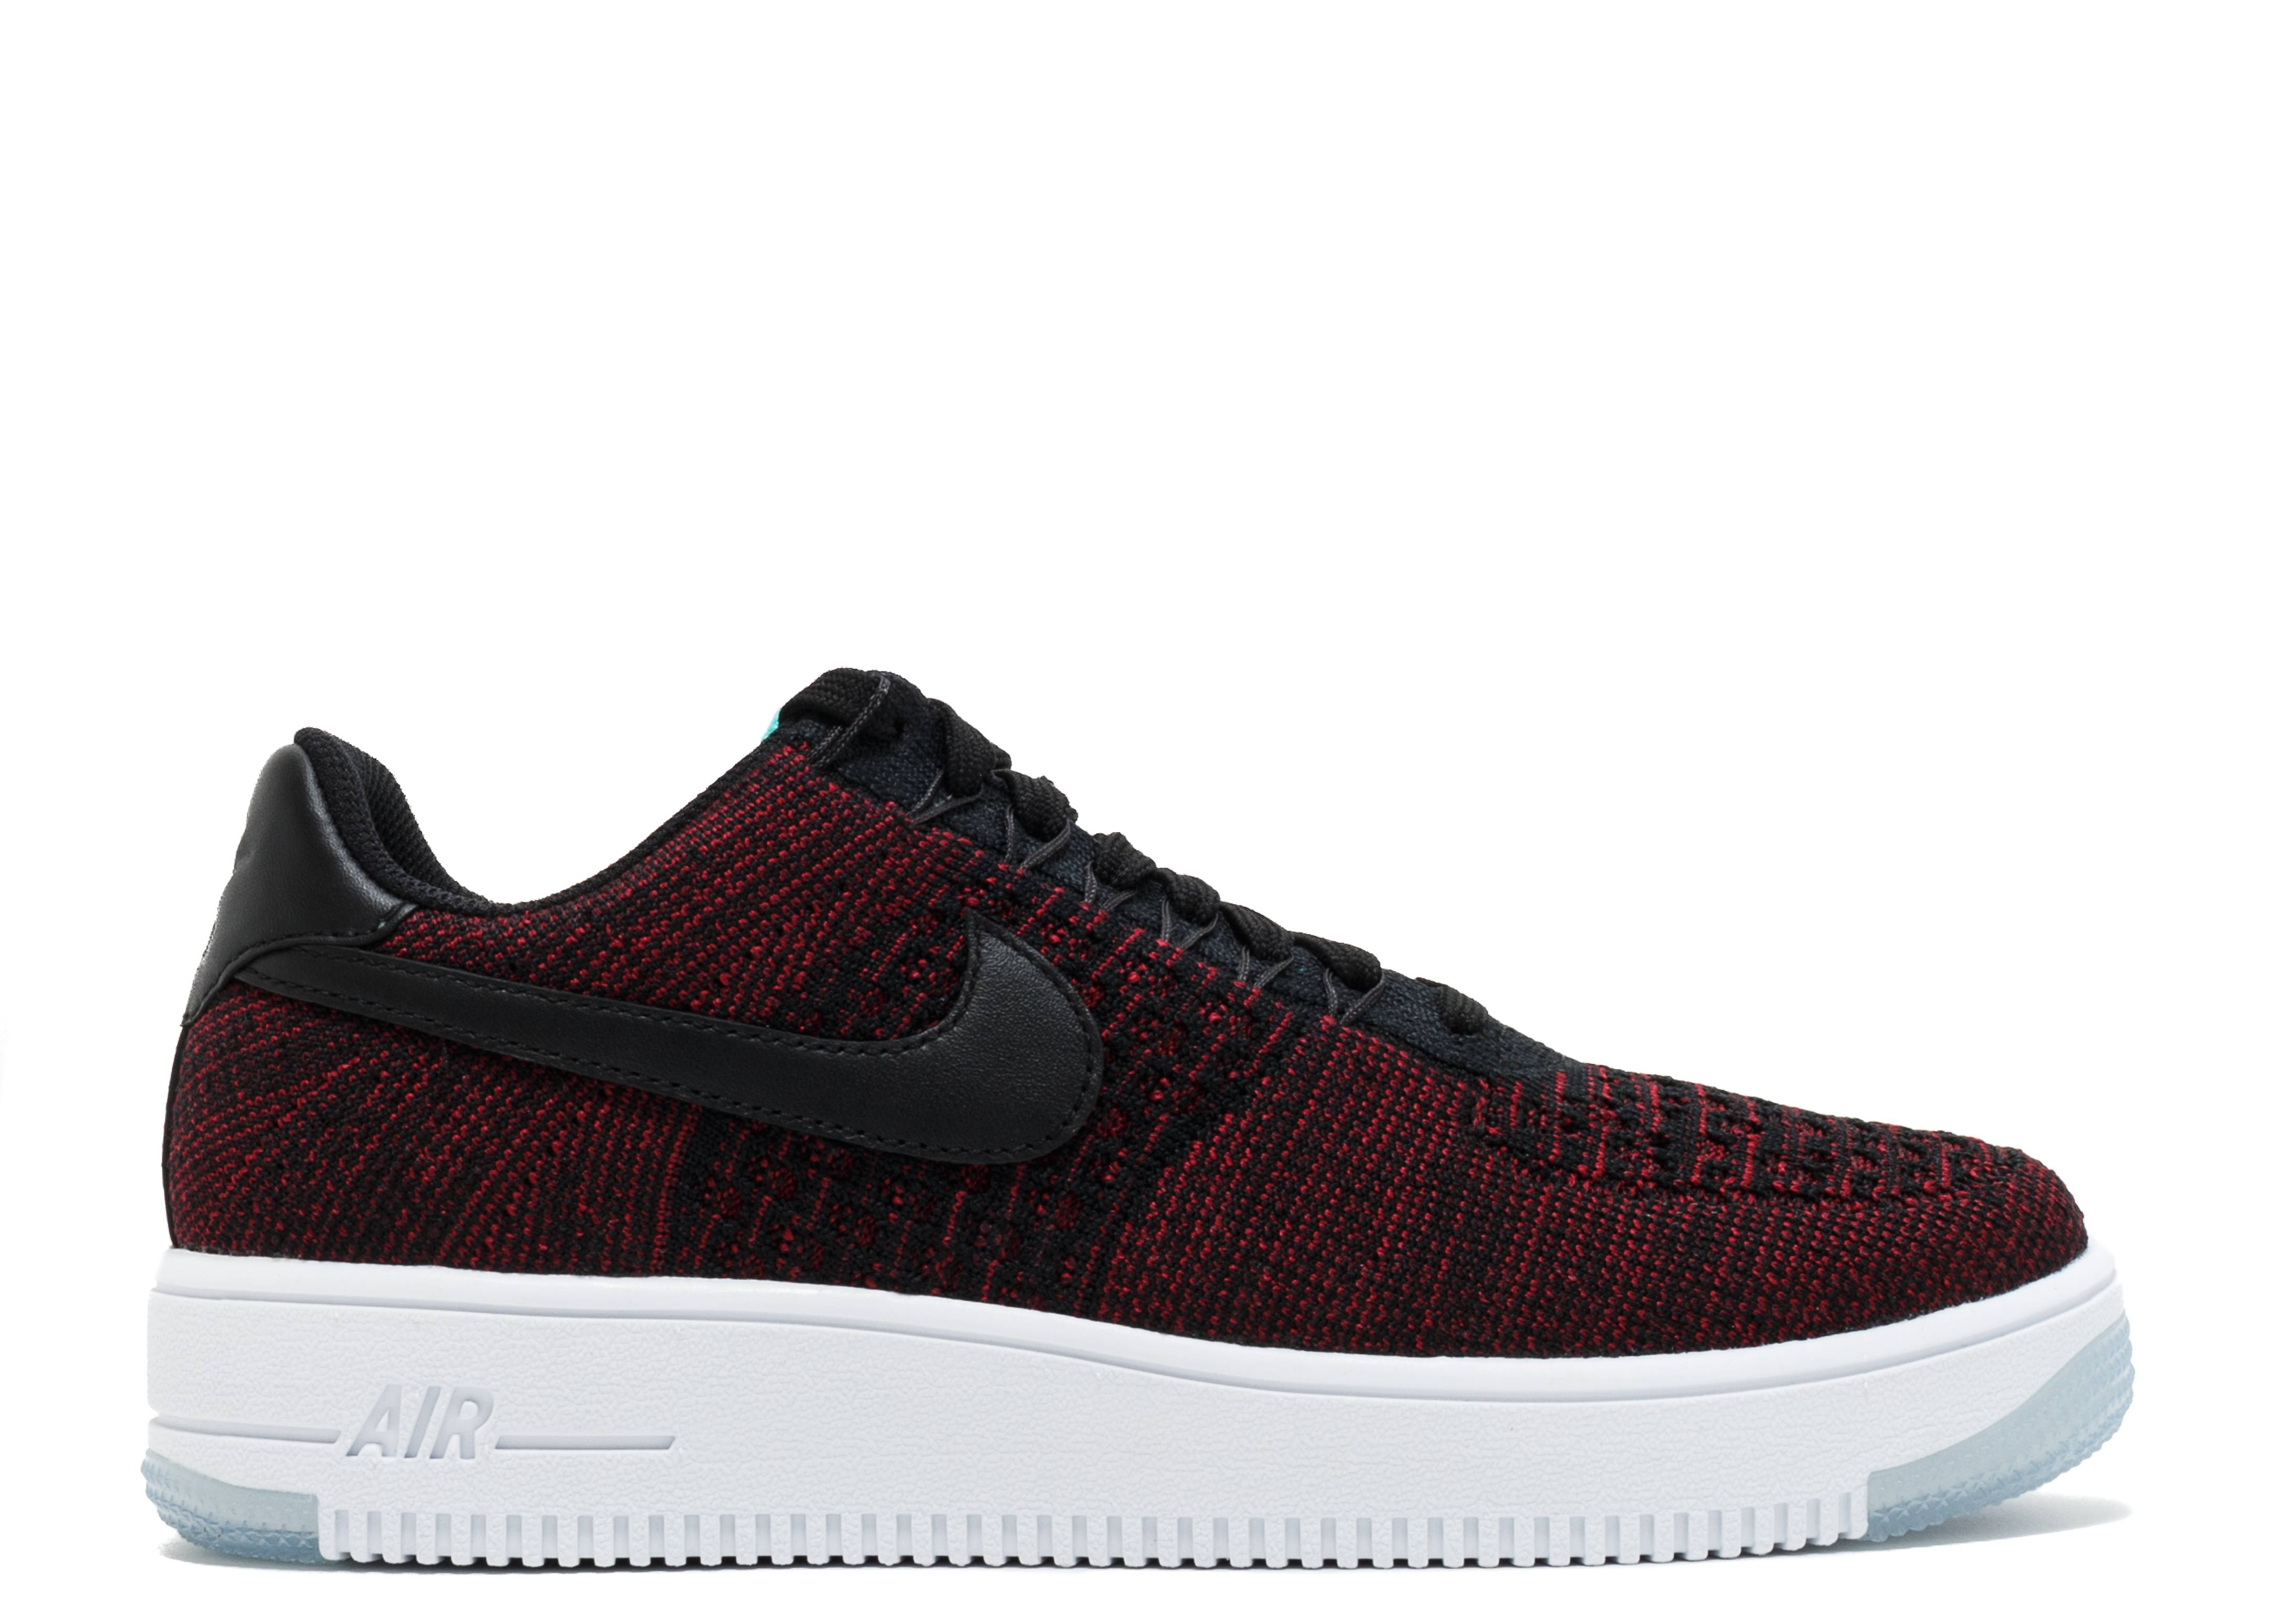 w air force 1 flyknit low